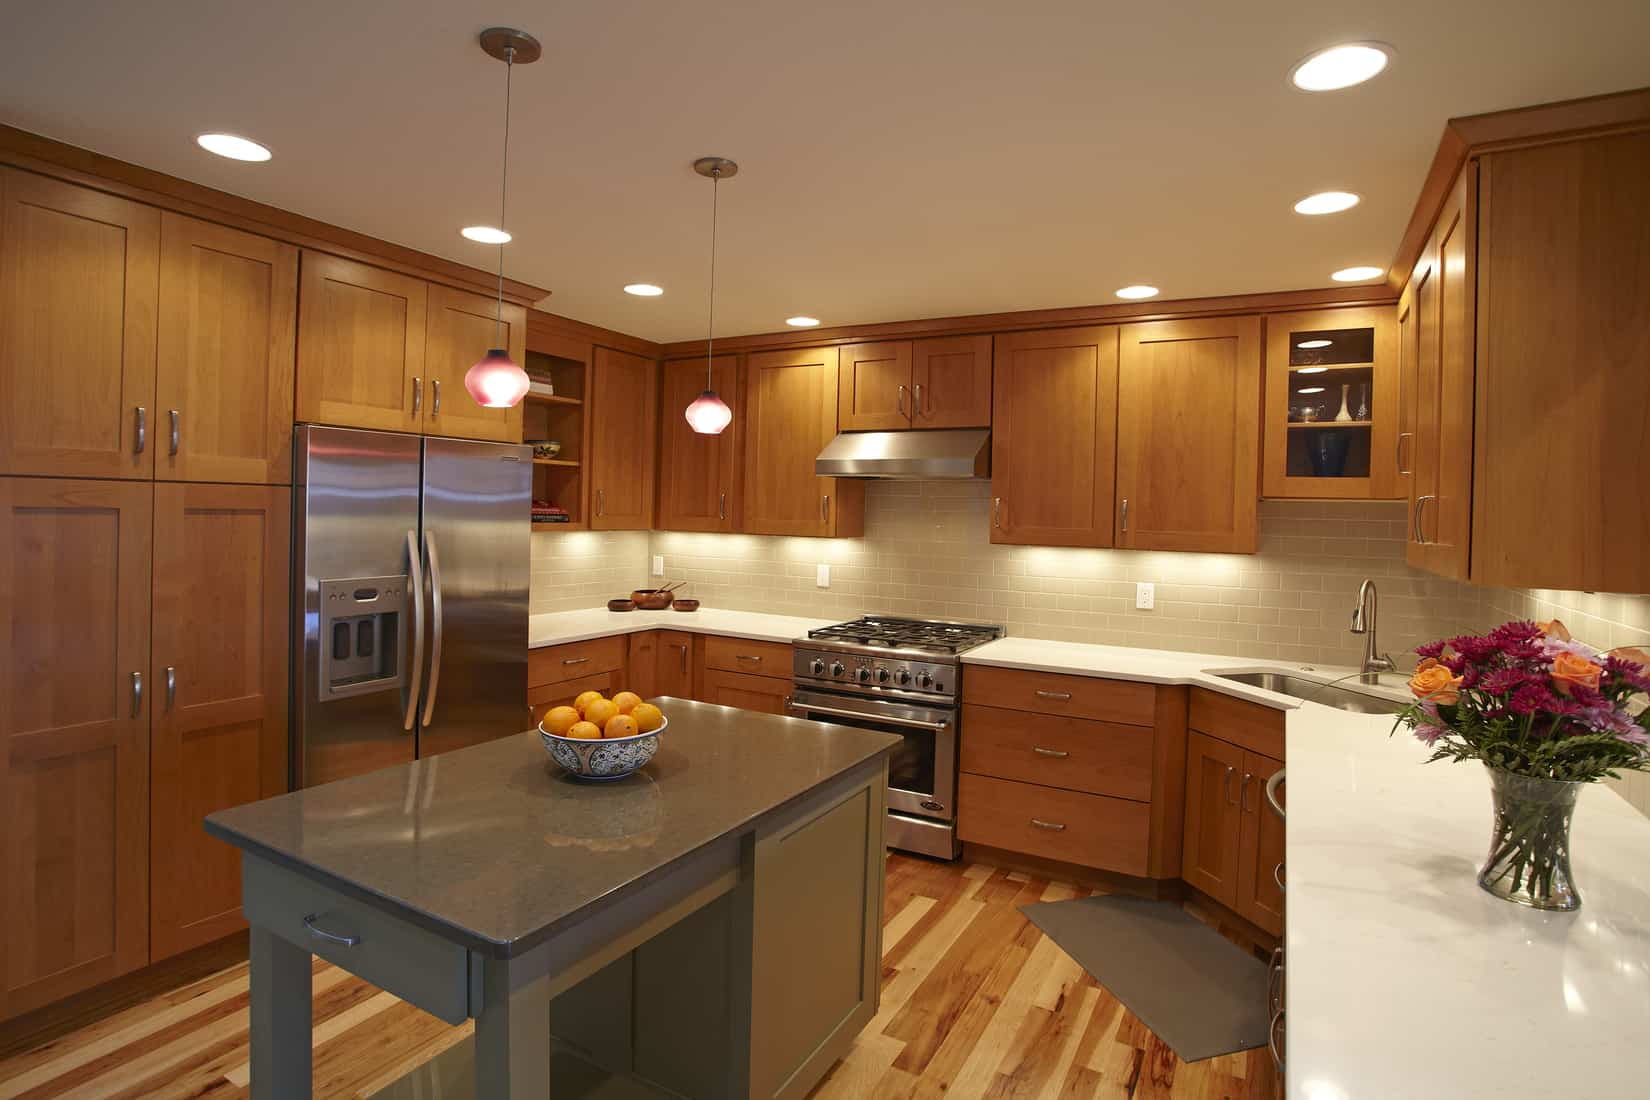 Kitchen Remodel Boulder Add Some Wow Factor To Your Kitchen Remodel Melton Design Build